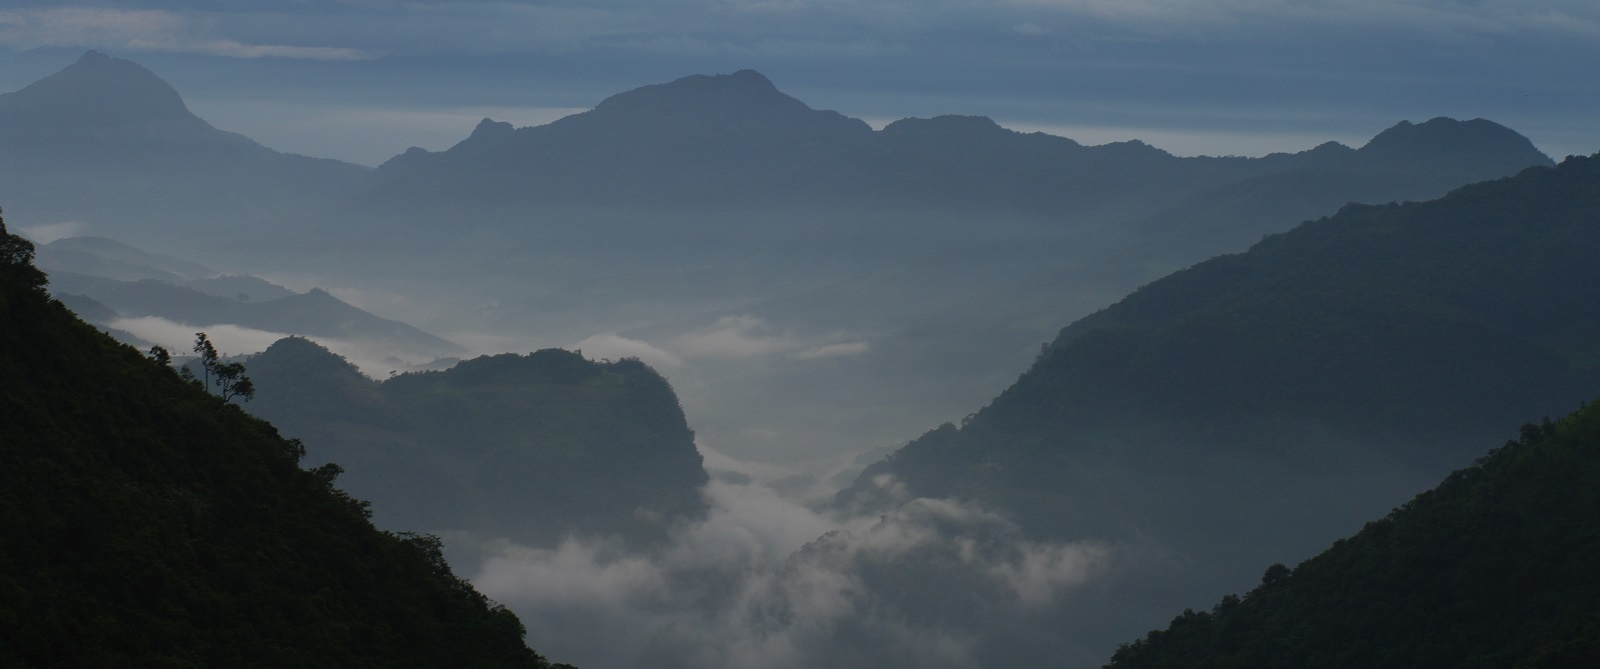 Looking across the border from China into Myanmar (Photo: David and Jessie/Flickr)